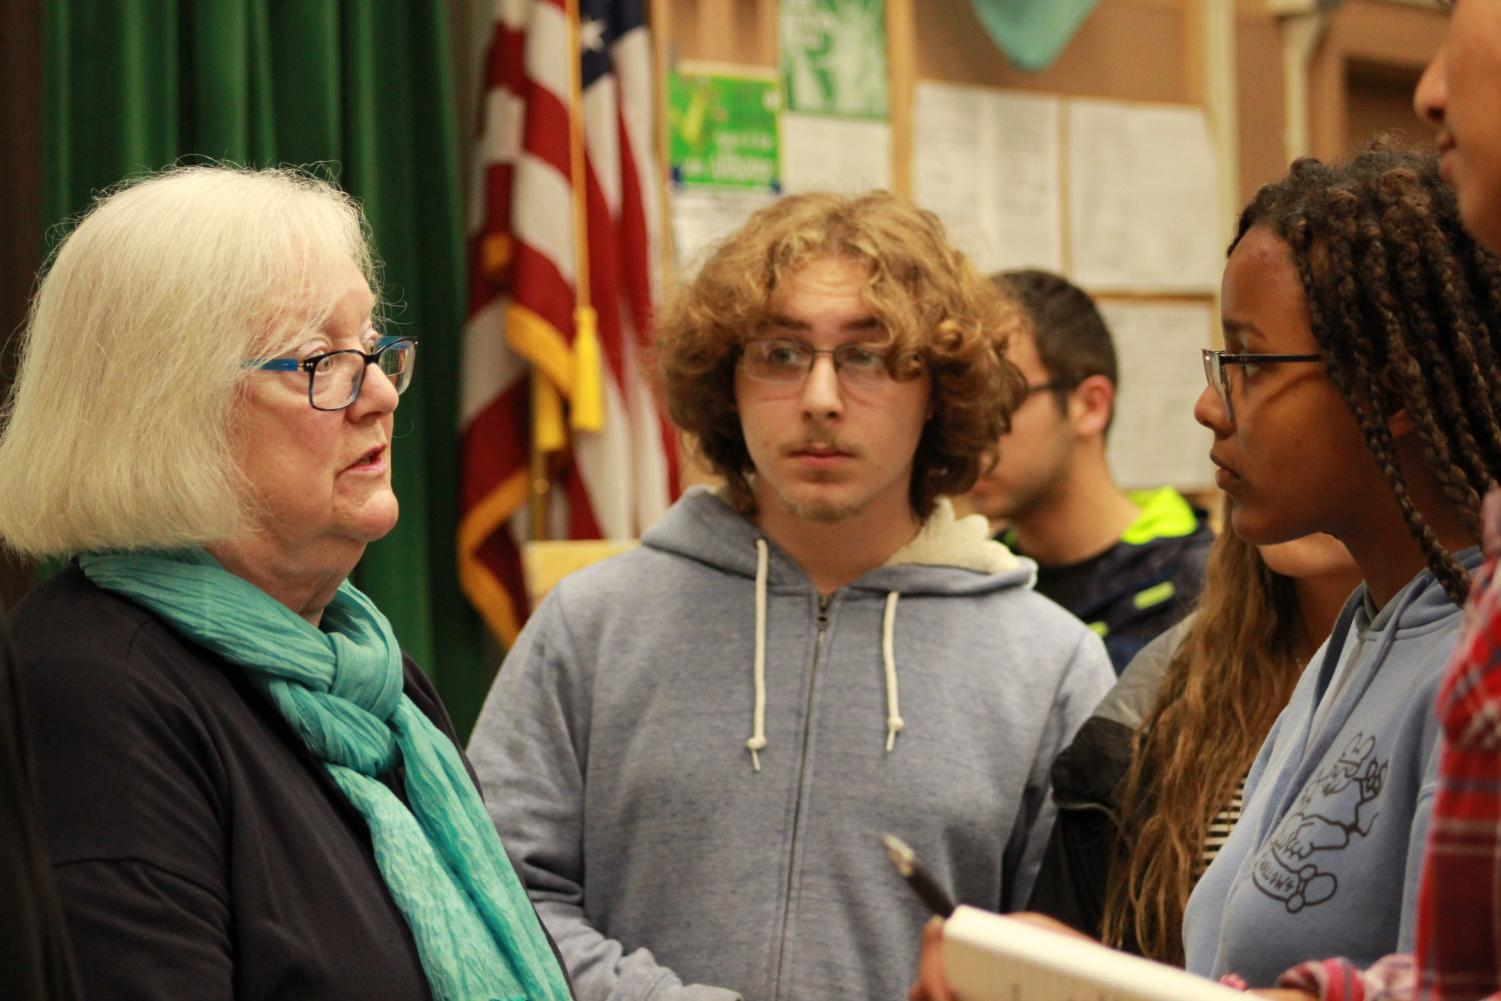 Sophomores+Francisco+Weltman+and+Miko+Martinez+speak+with++Holocaust+survivor+Louise+Lawrence-Israels+on+May+9.